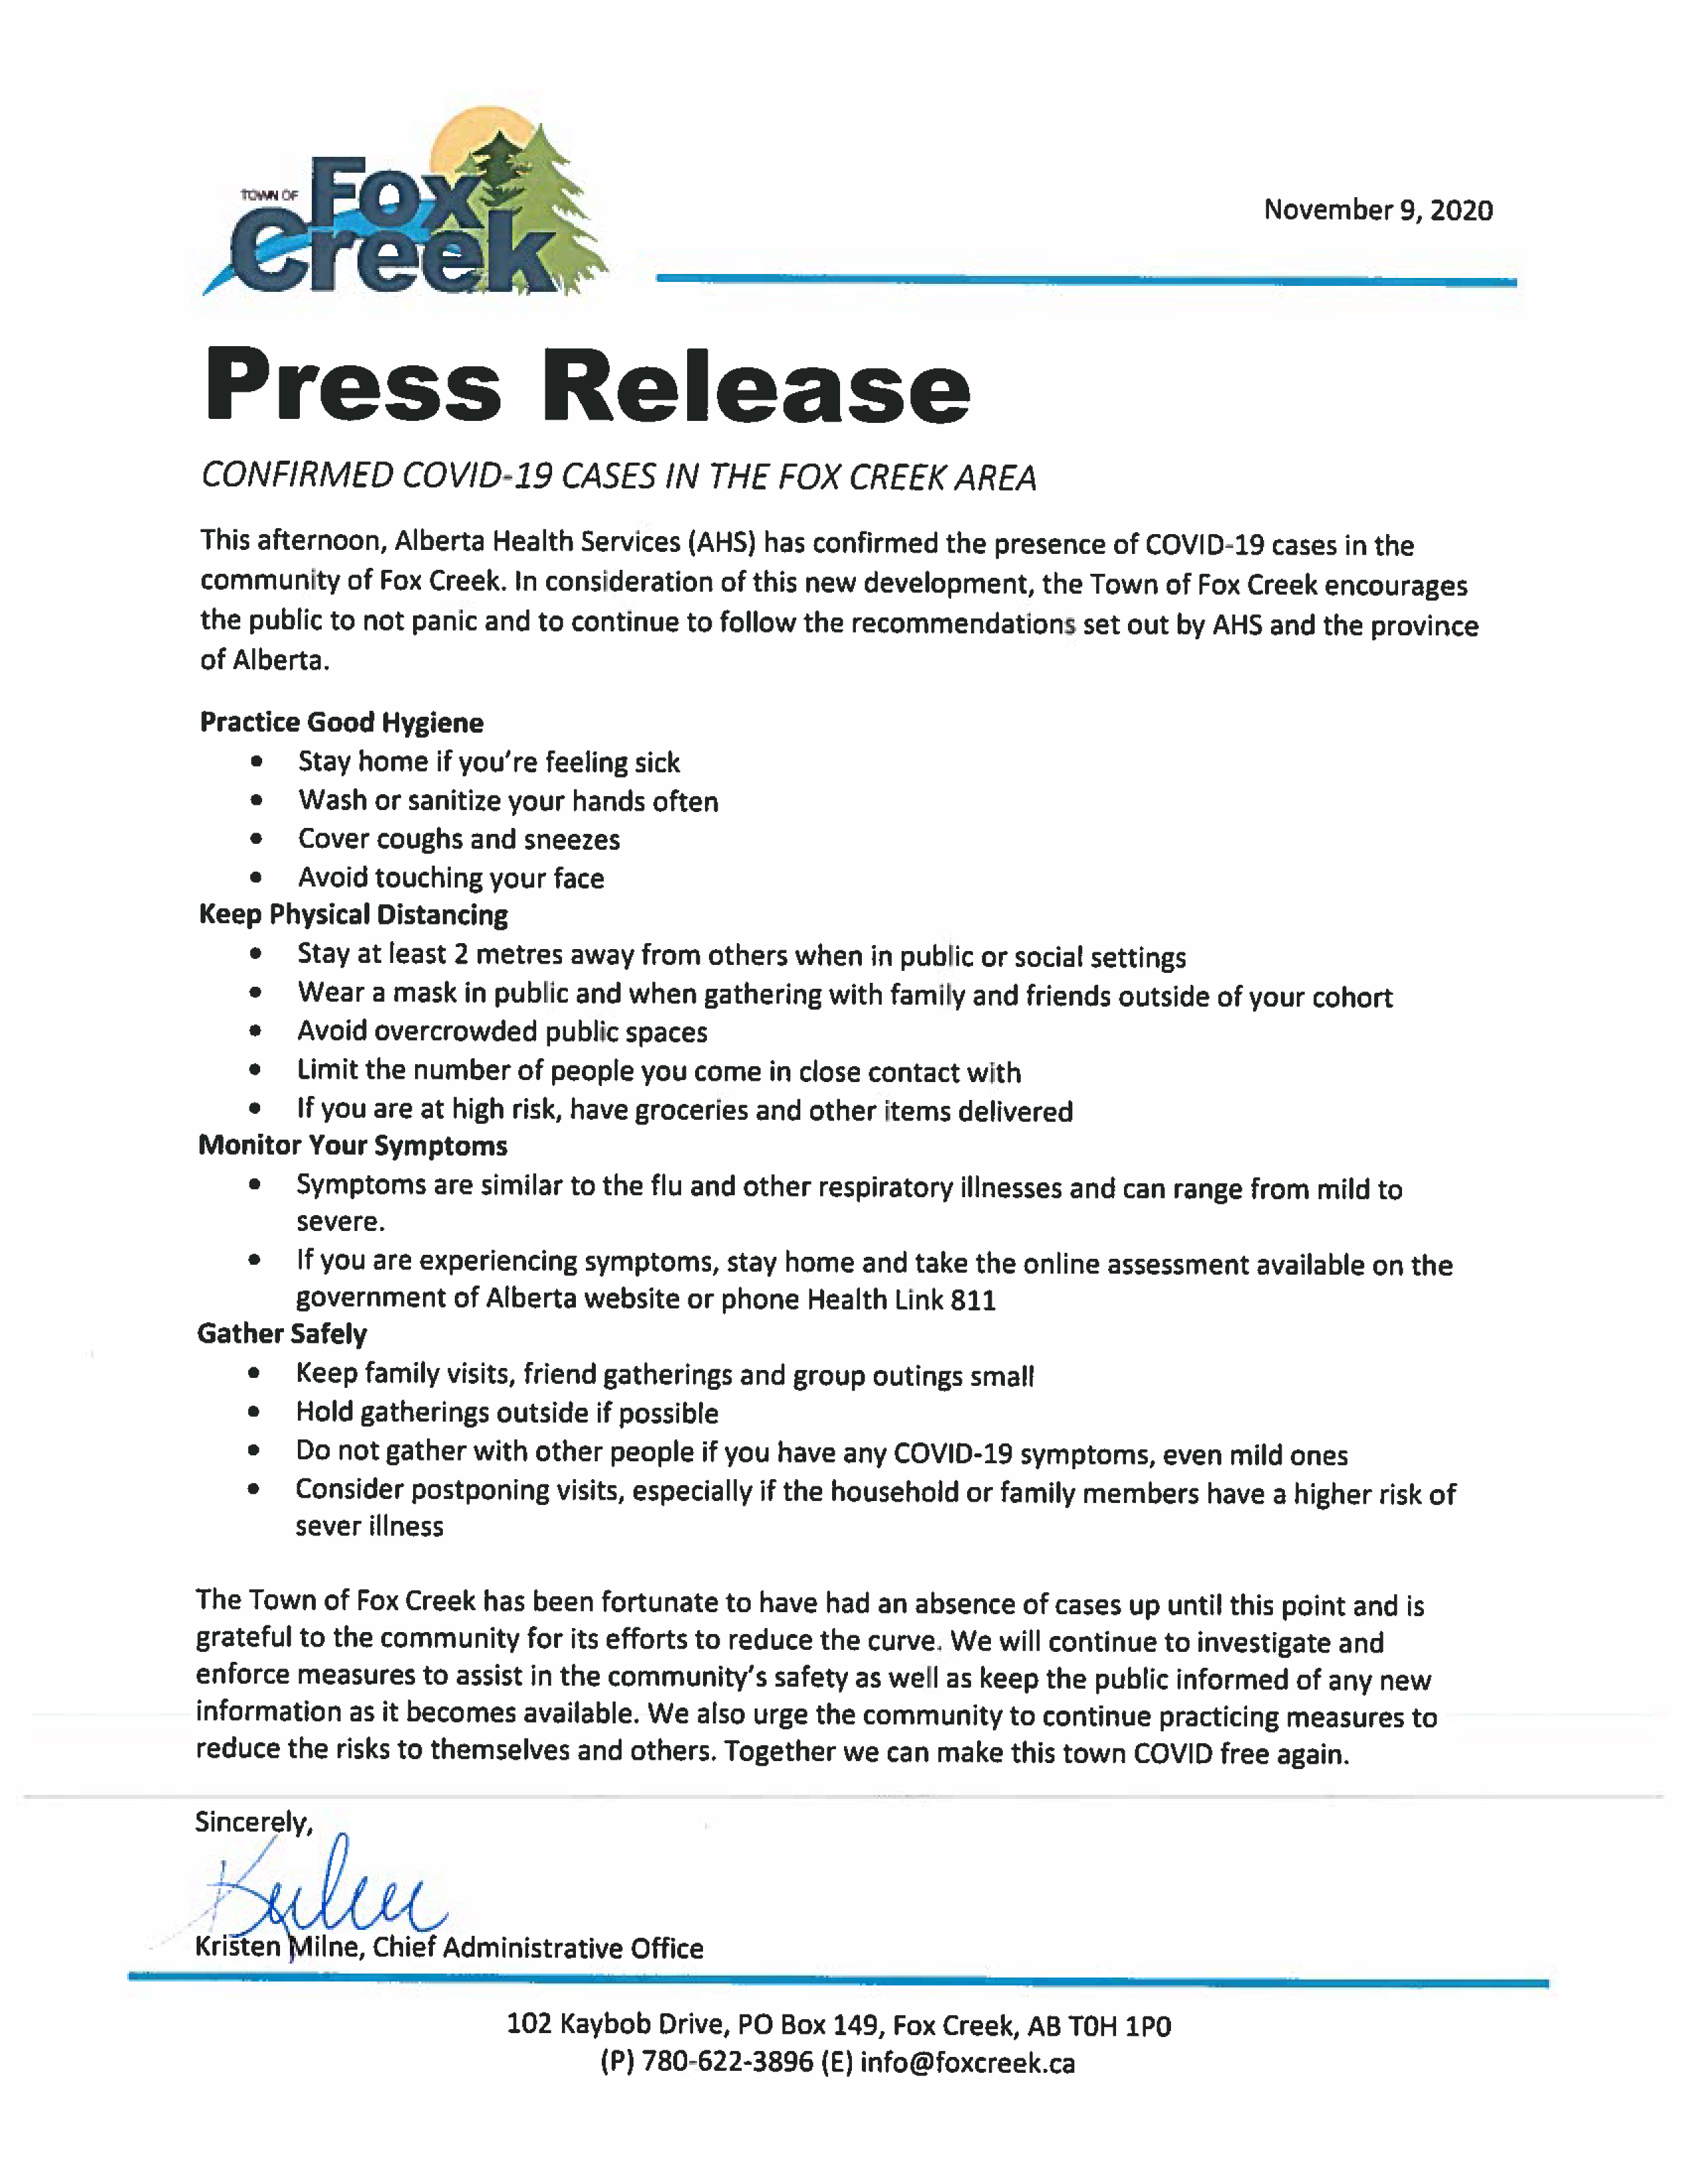 Press Release Confirmed Covid 19 Cases In The Fox Creek Area Town Of Fox Creek